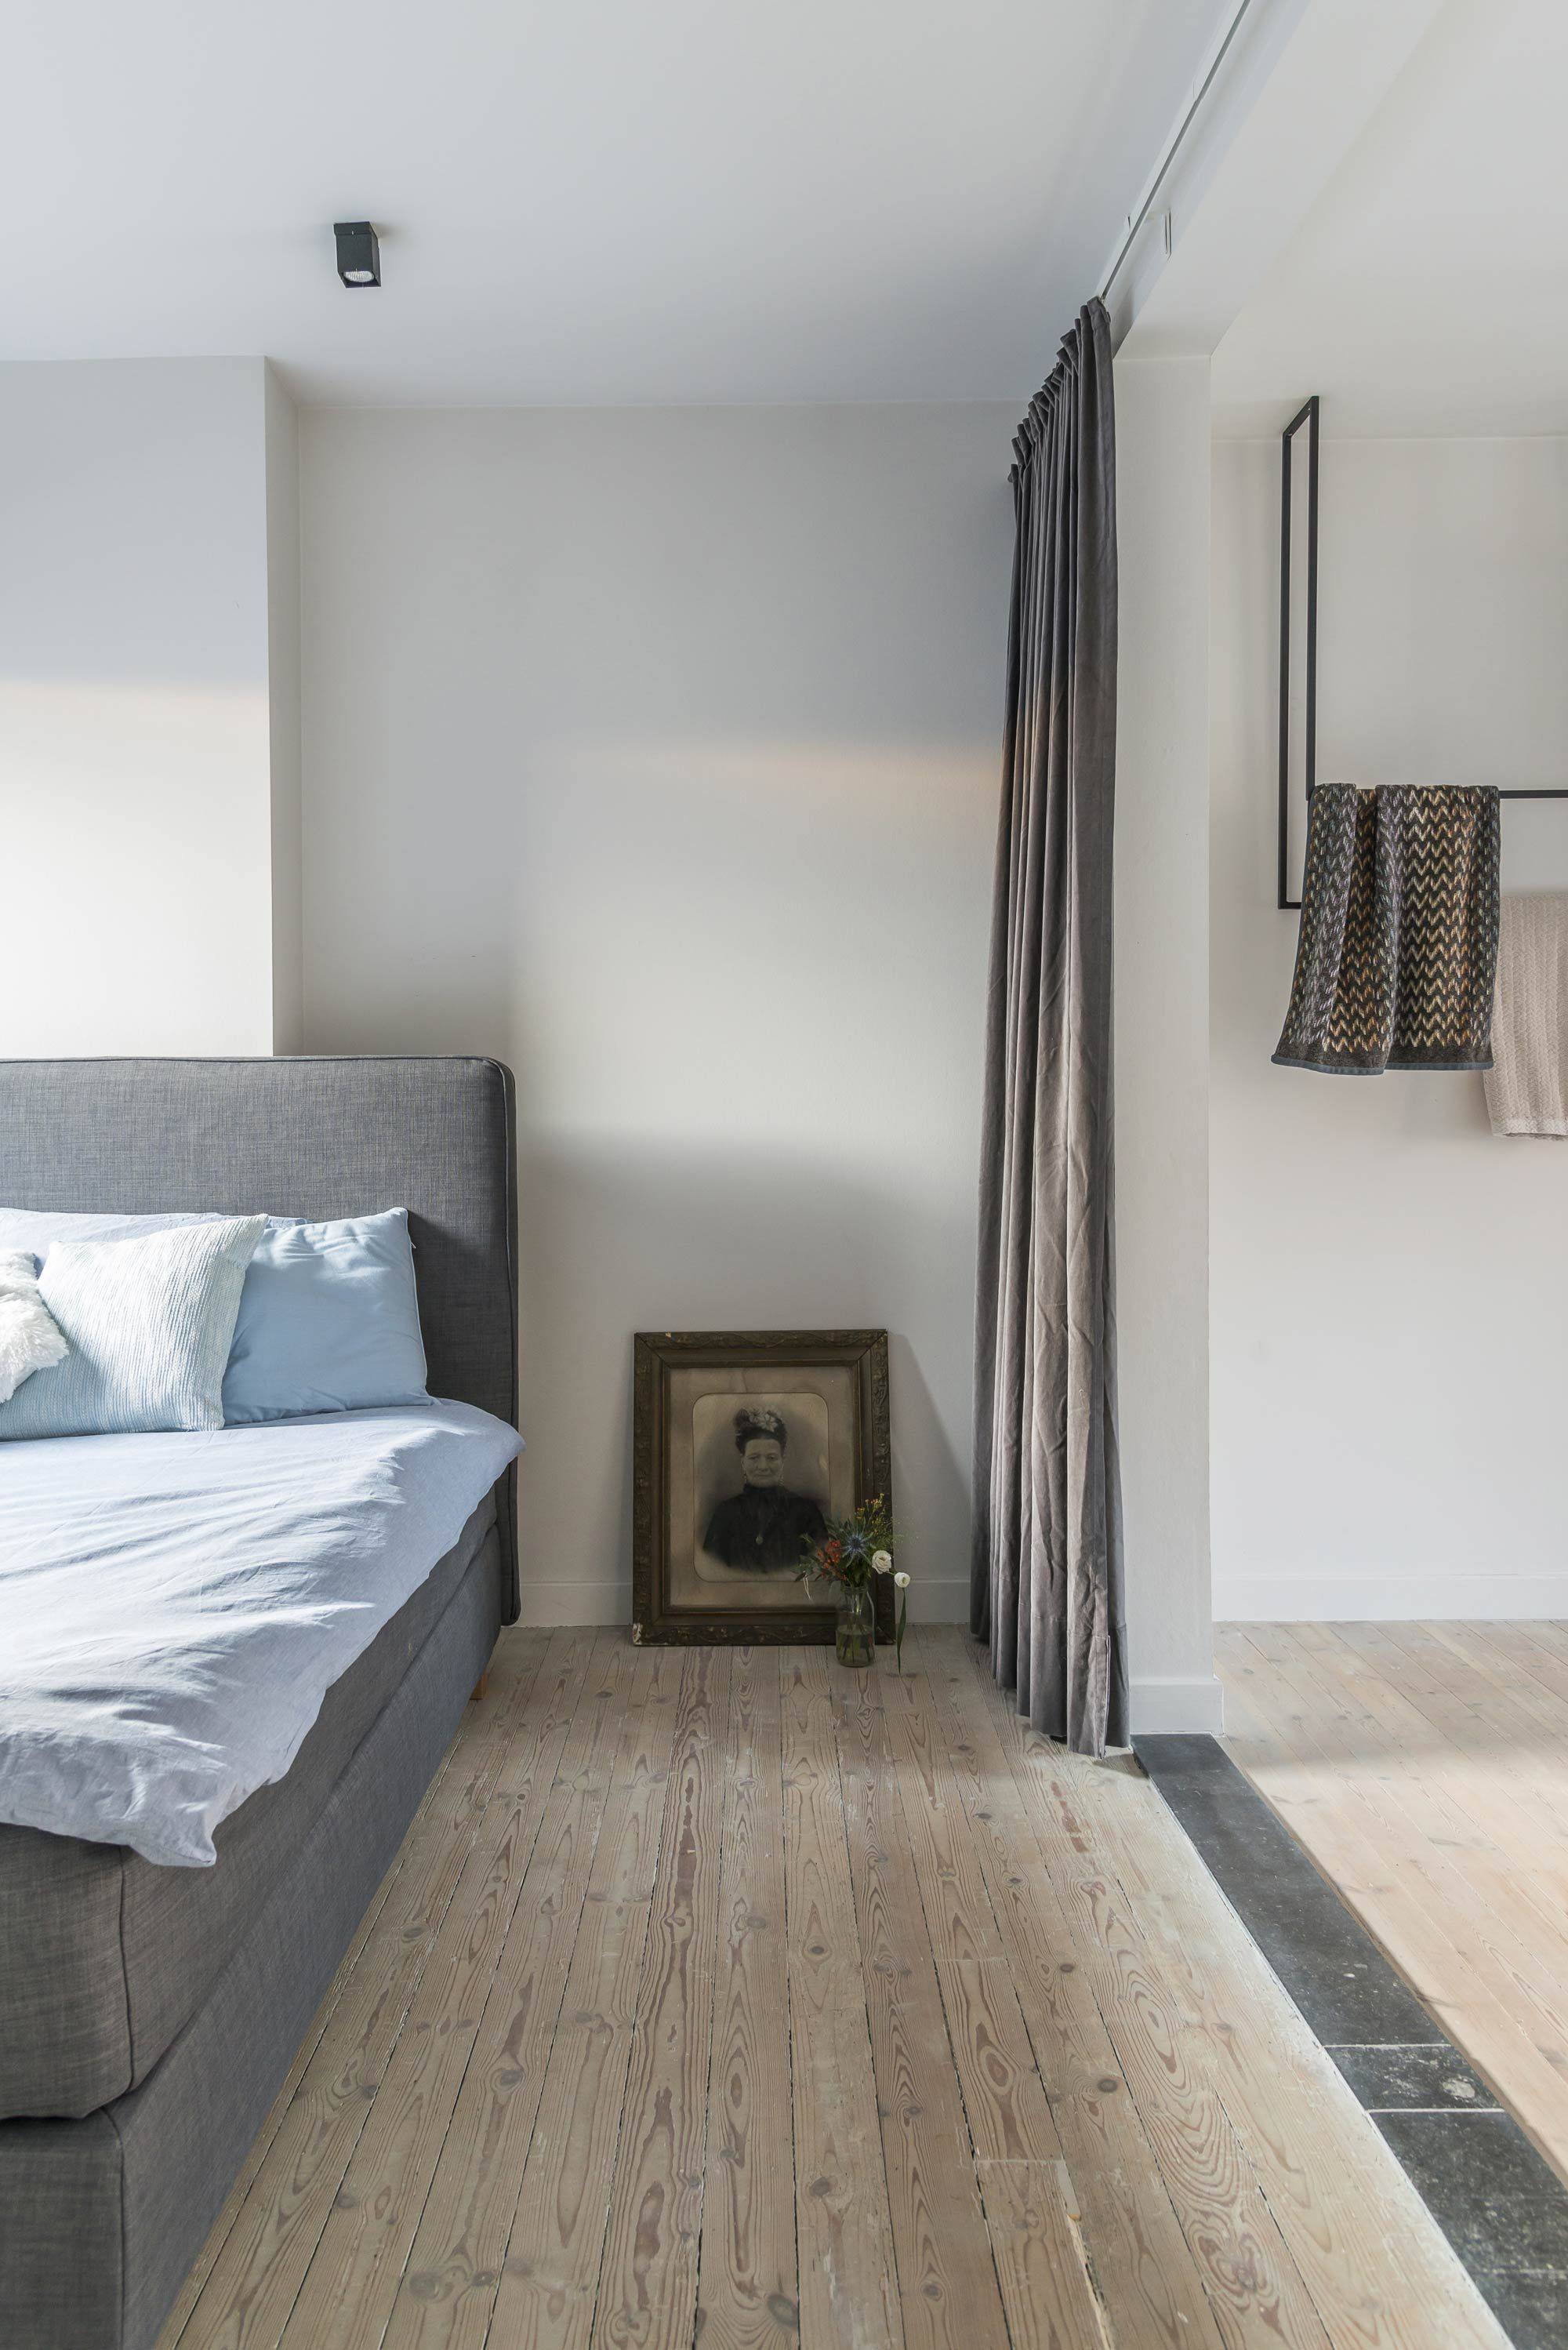 Slaapkamer met grijs bed en houten vloer | Bedroom with grey bed and ...